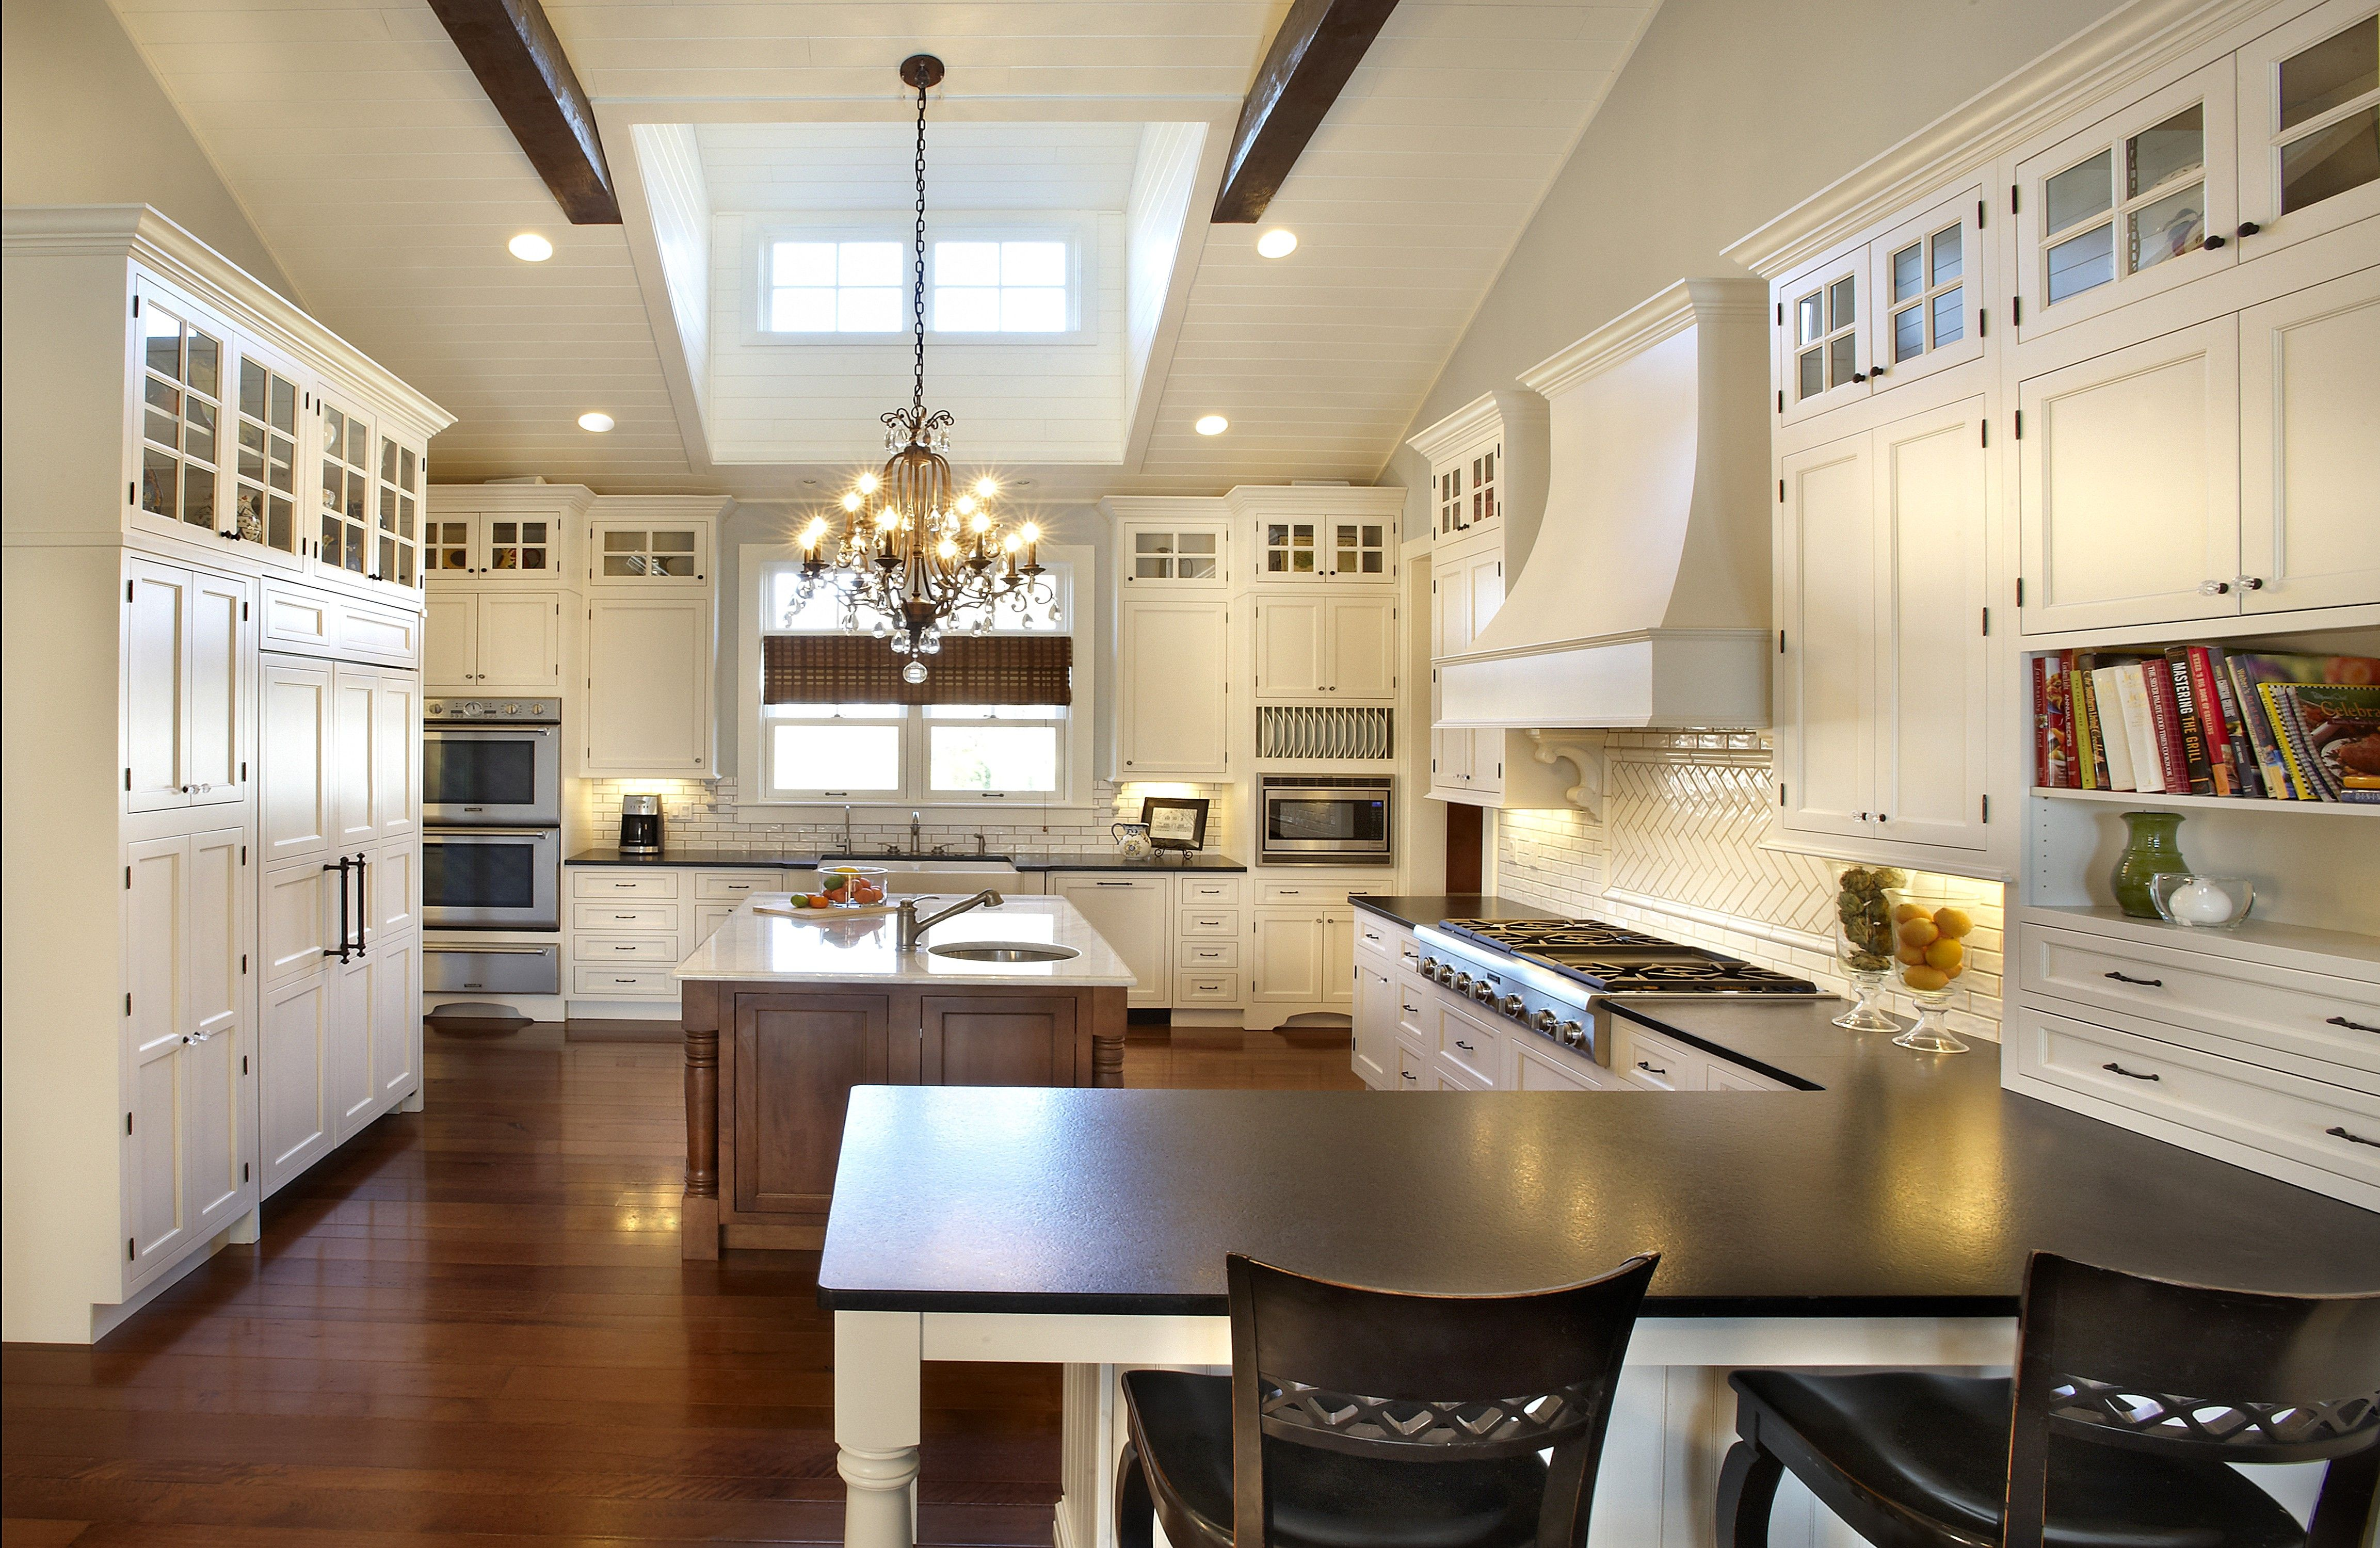 Curtiss W Byrne Architect Architect Chesterfield Residential And Commercial Dream Kitchens Design Luxury Kitchens Farmhouse Kitchen Design